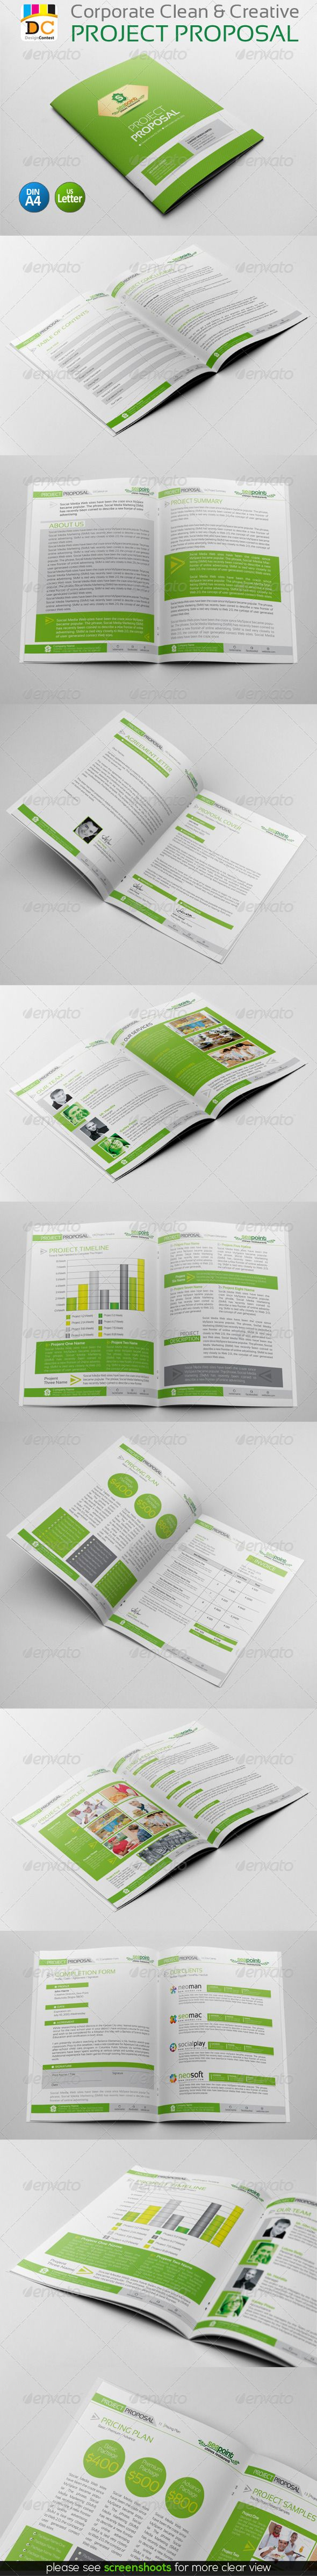 Corporate Creative Clean Project Proposal 18 pages